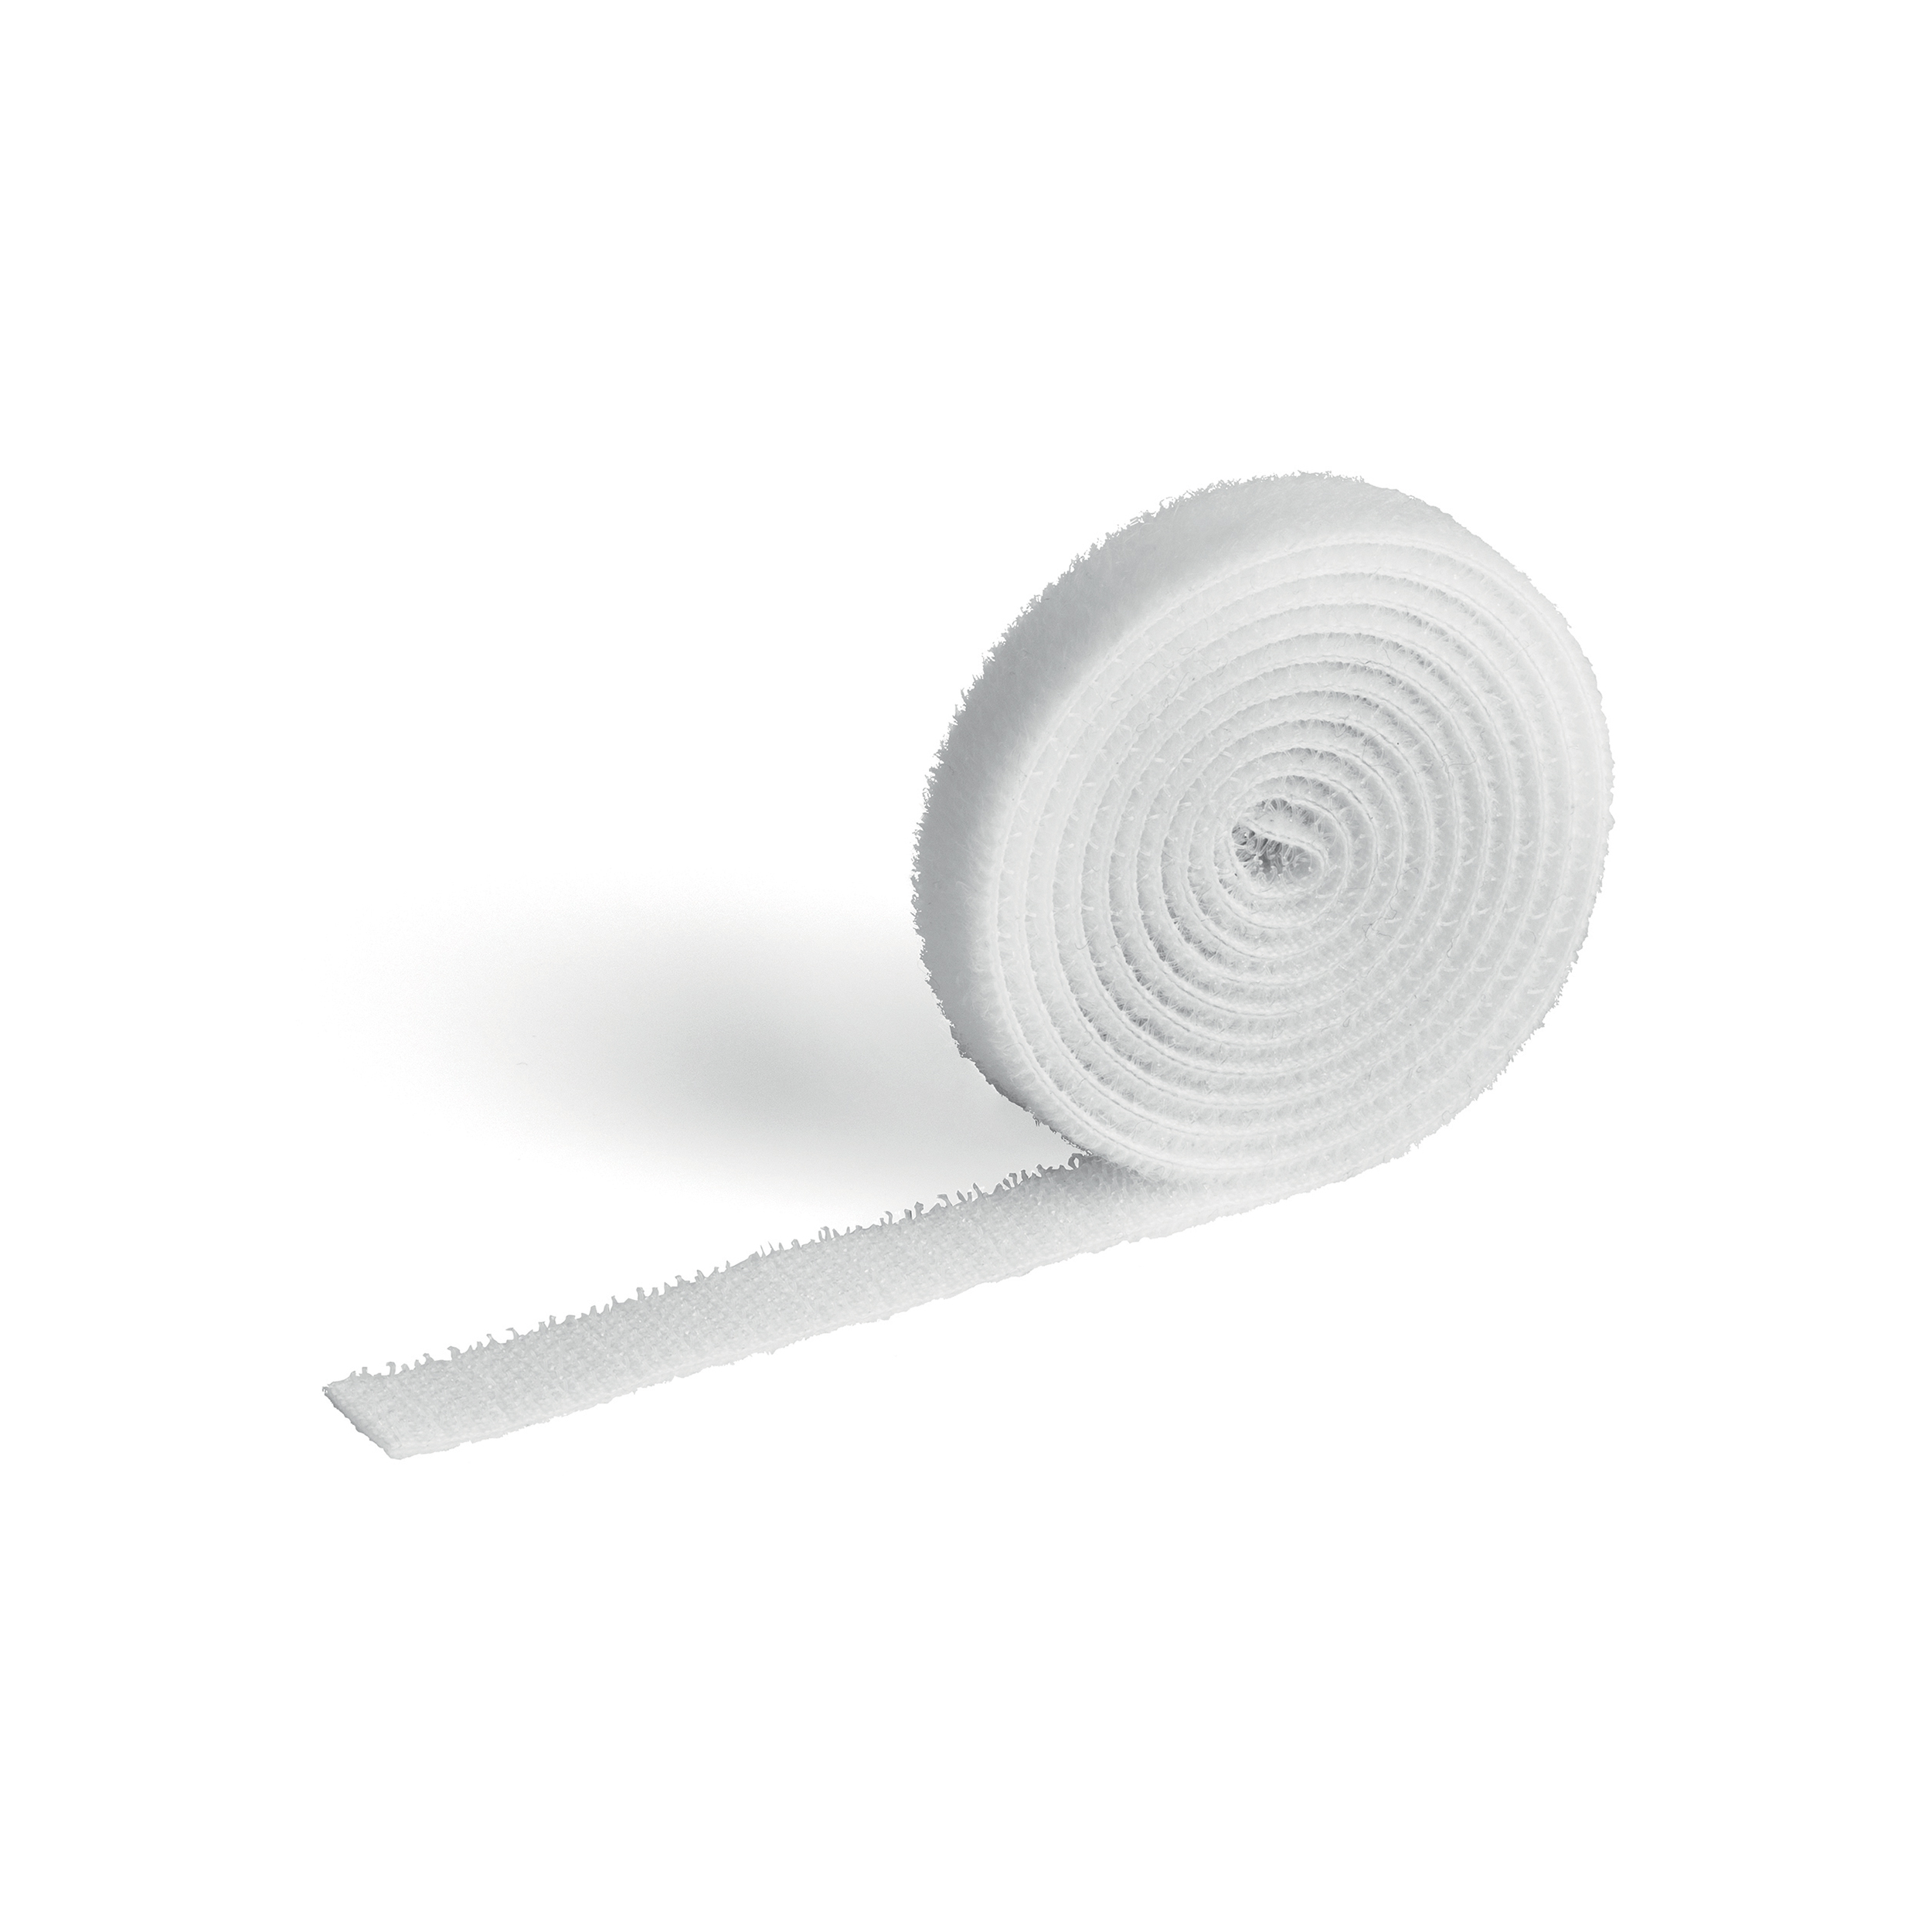 Cable Tidies Durable CAVOLINE GRIP 10 Self Gripping Cable Management Tape White Ref 503102